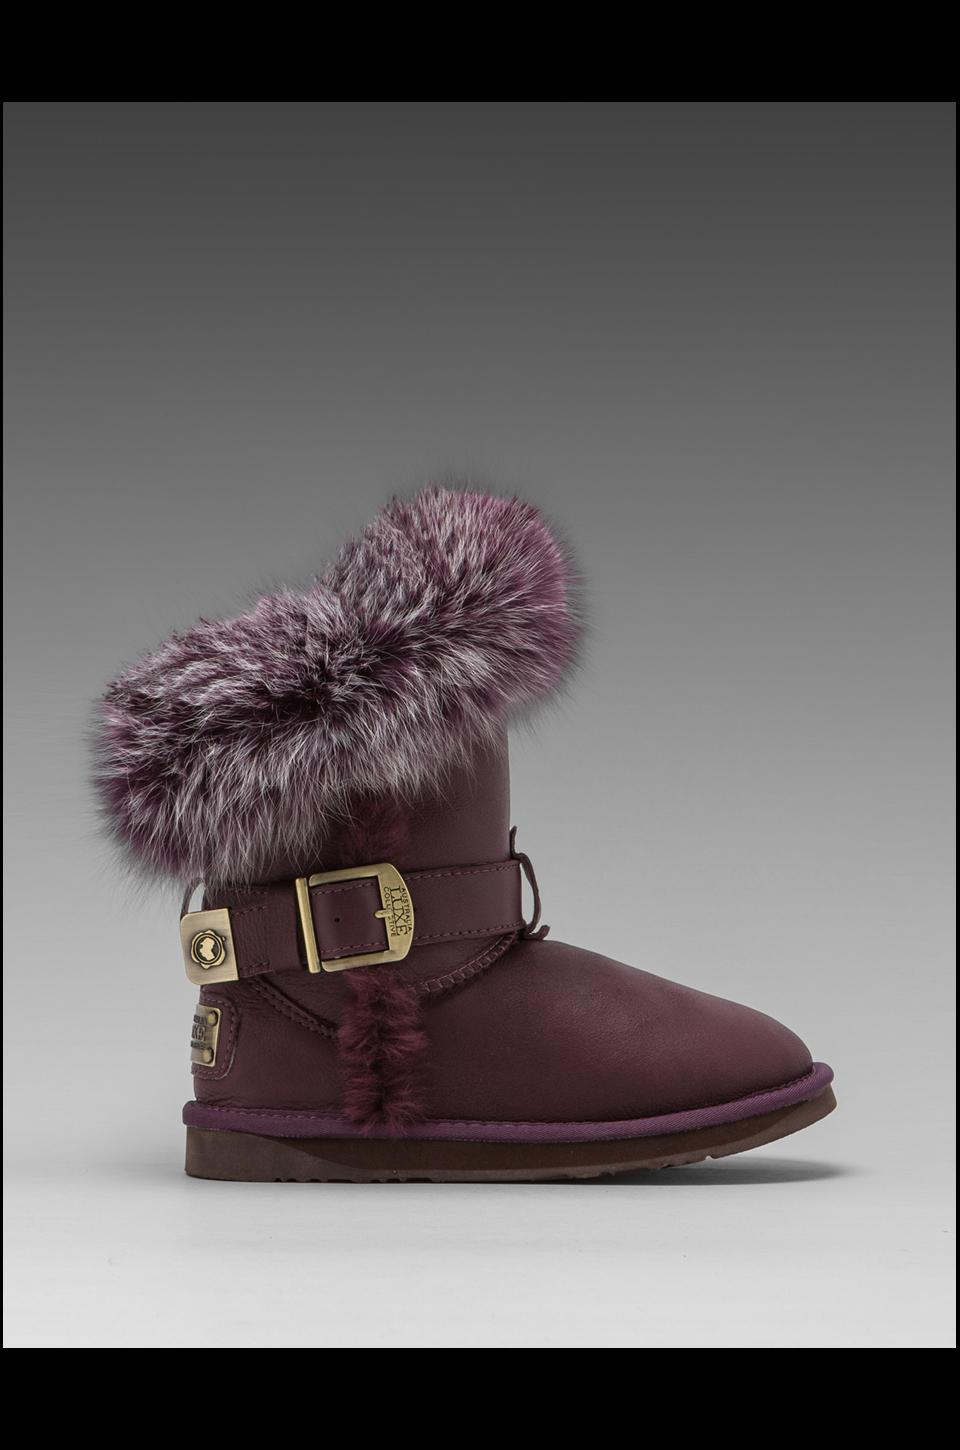 Australia Luxe Collective Tsar Short Boot with Raccoon Fur Trim in Plum